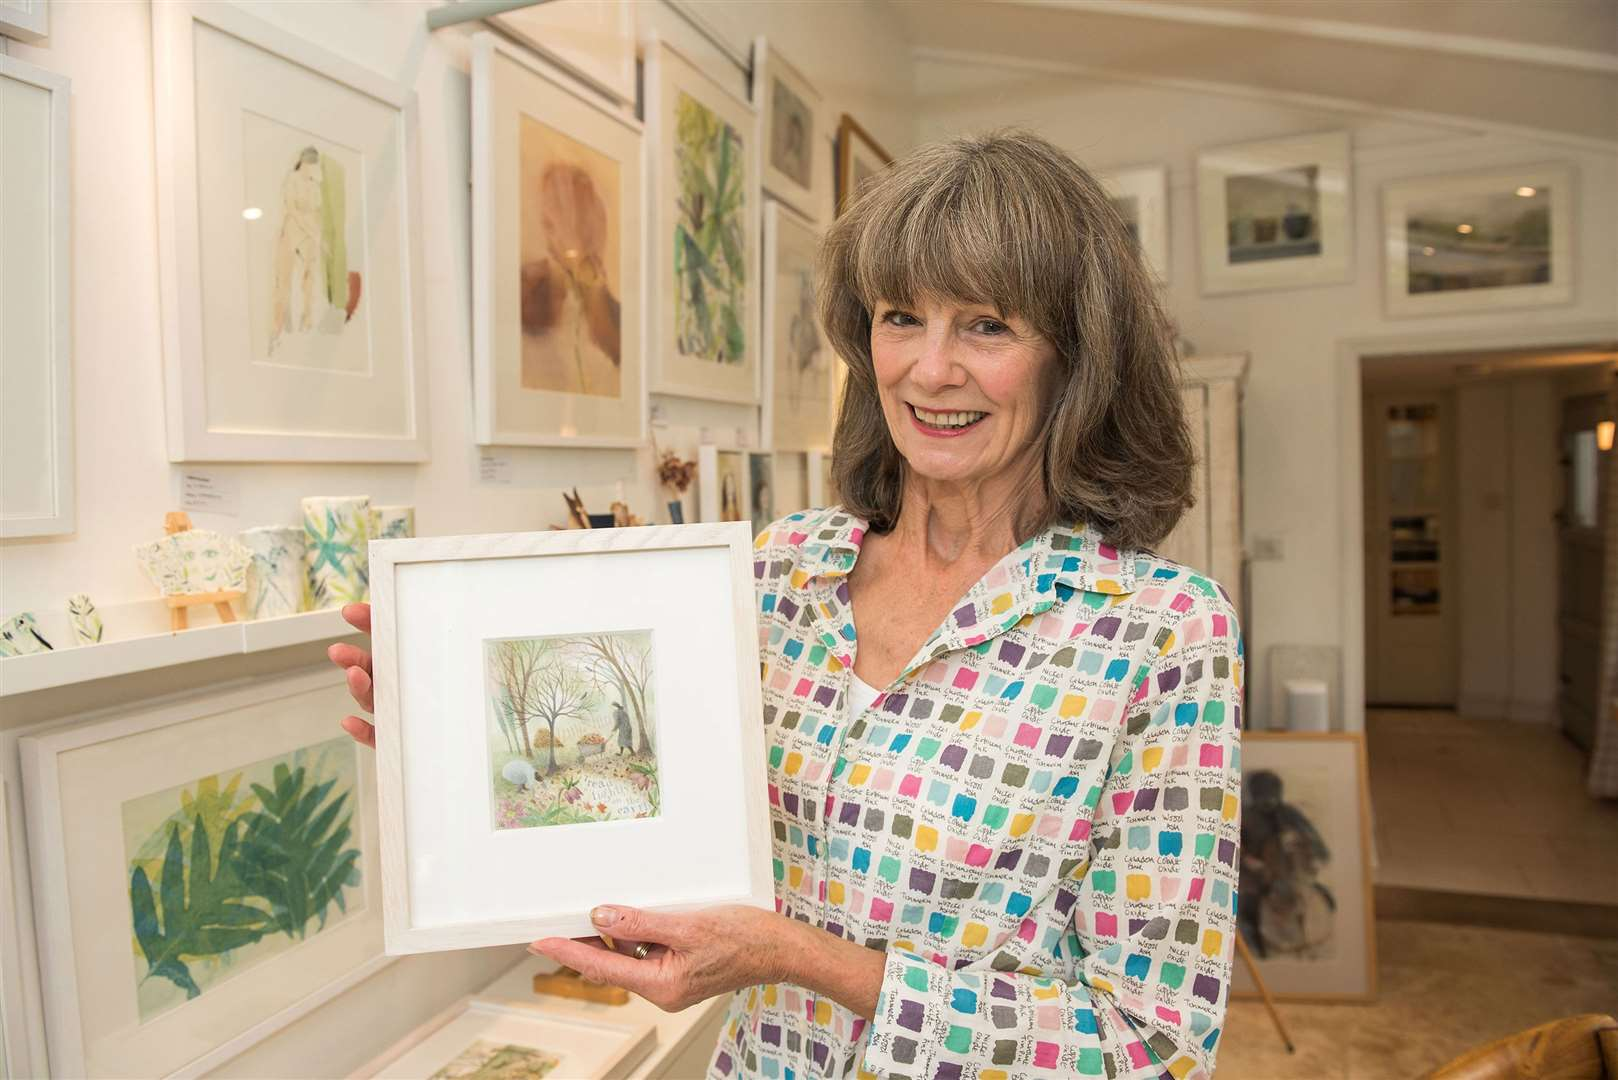 Sudbury-Illustrator Judith Glover is taking part in an upcoming open studio event. She will be showcasing her work. Friars Street, Sudbury. Picture by Mark Westley (42290155)